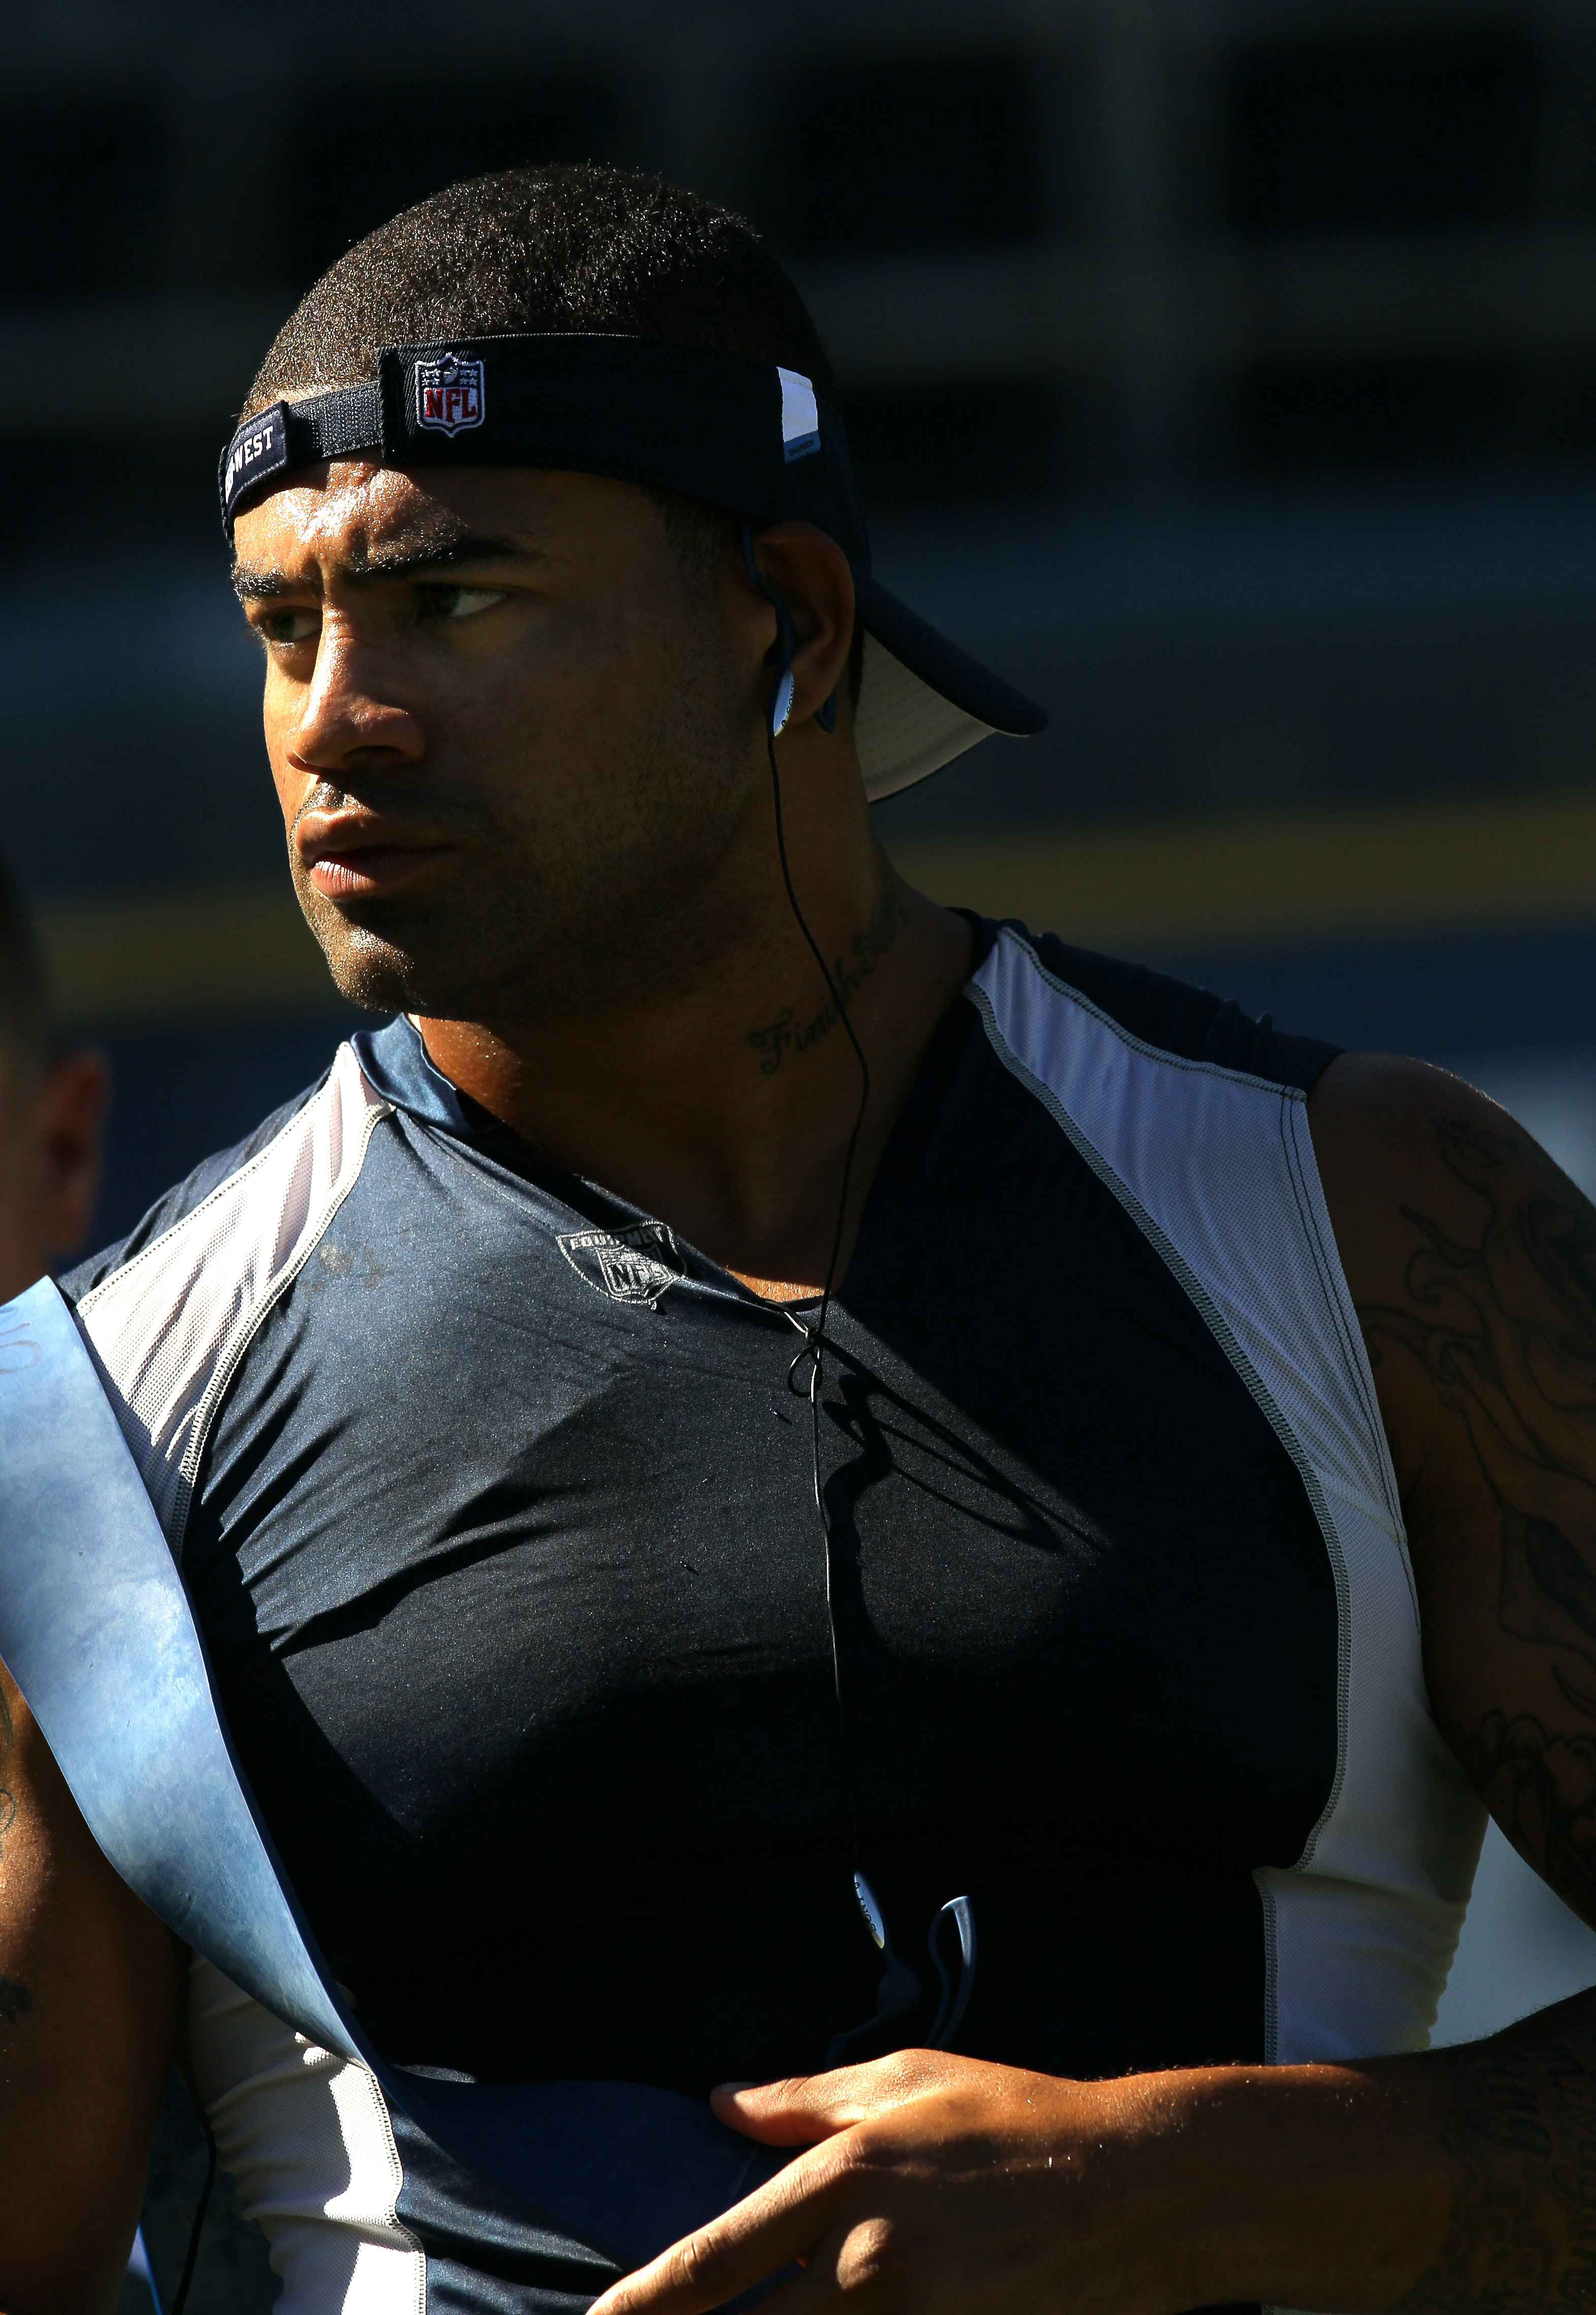 SAN DIEGO - AUGUST 14:  Linebacker Shawne Merriman #56 of the San Diego Chargers works out before the game with the Chicago Bears on August 14, 2010 at Qualcomm Stadium in San Diego, California.   Merriman signed his one year tender contract on Friday and